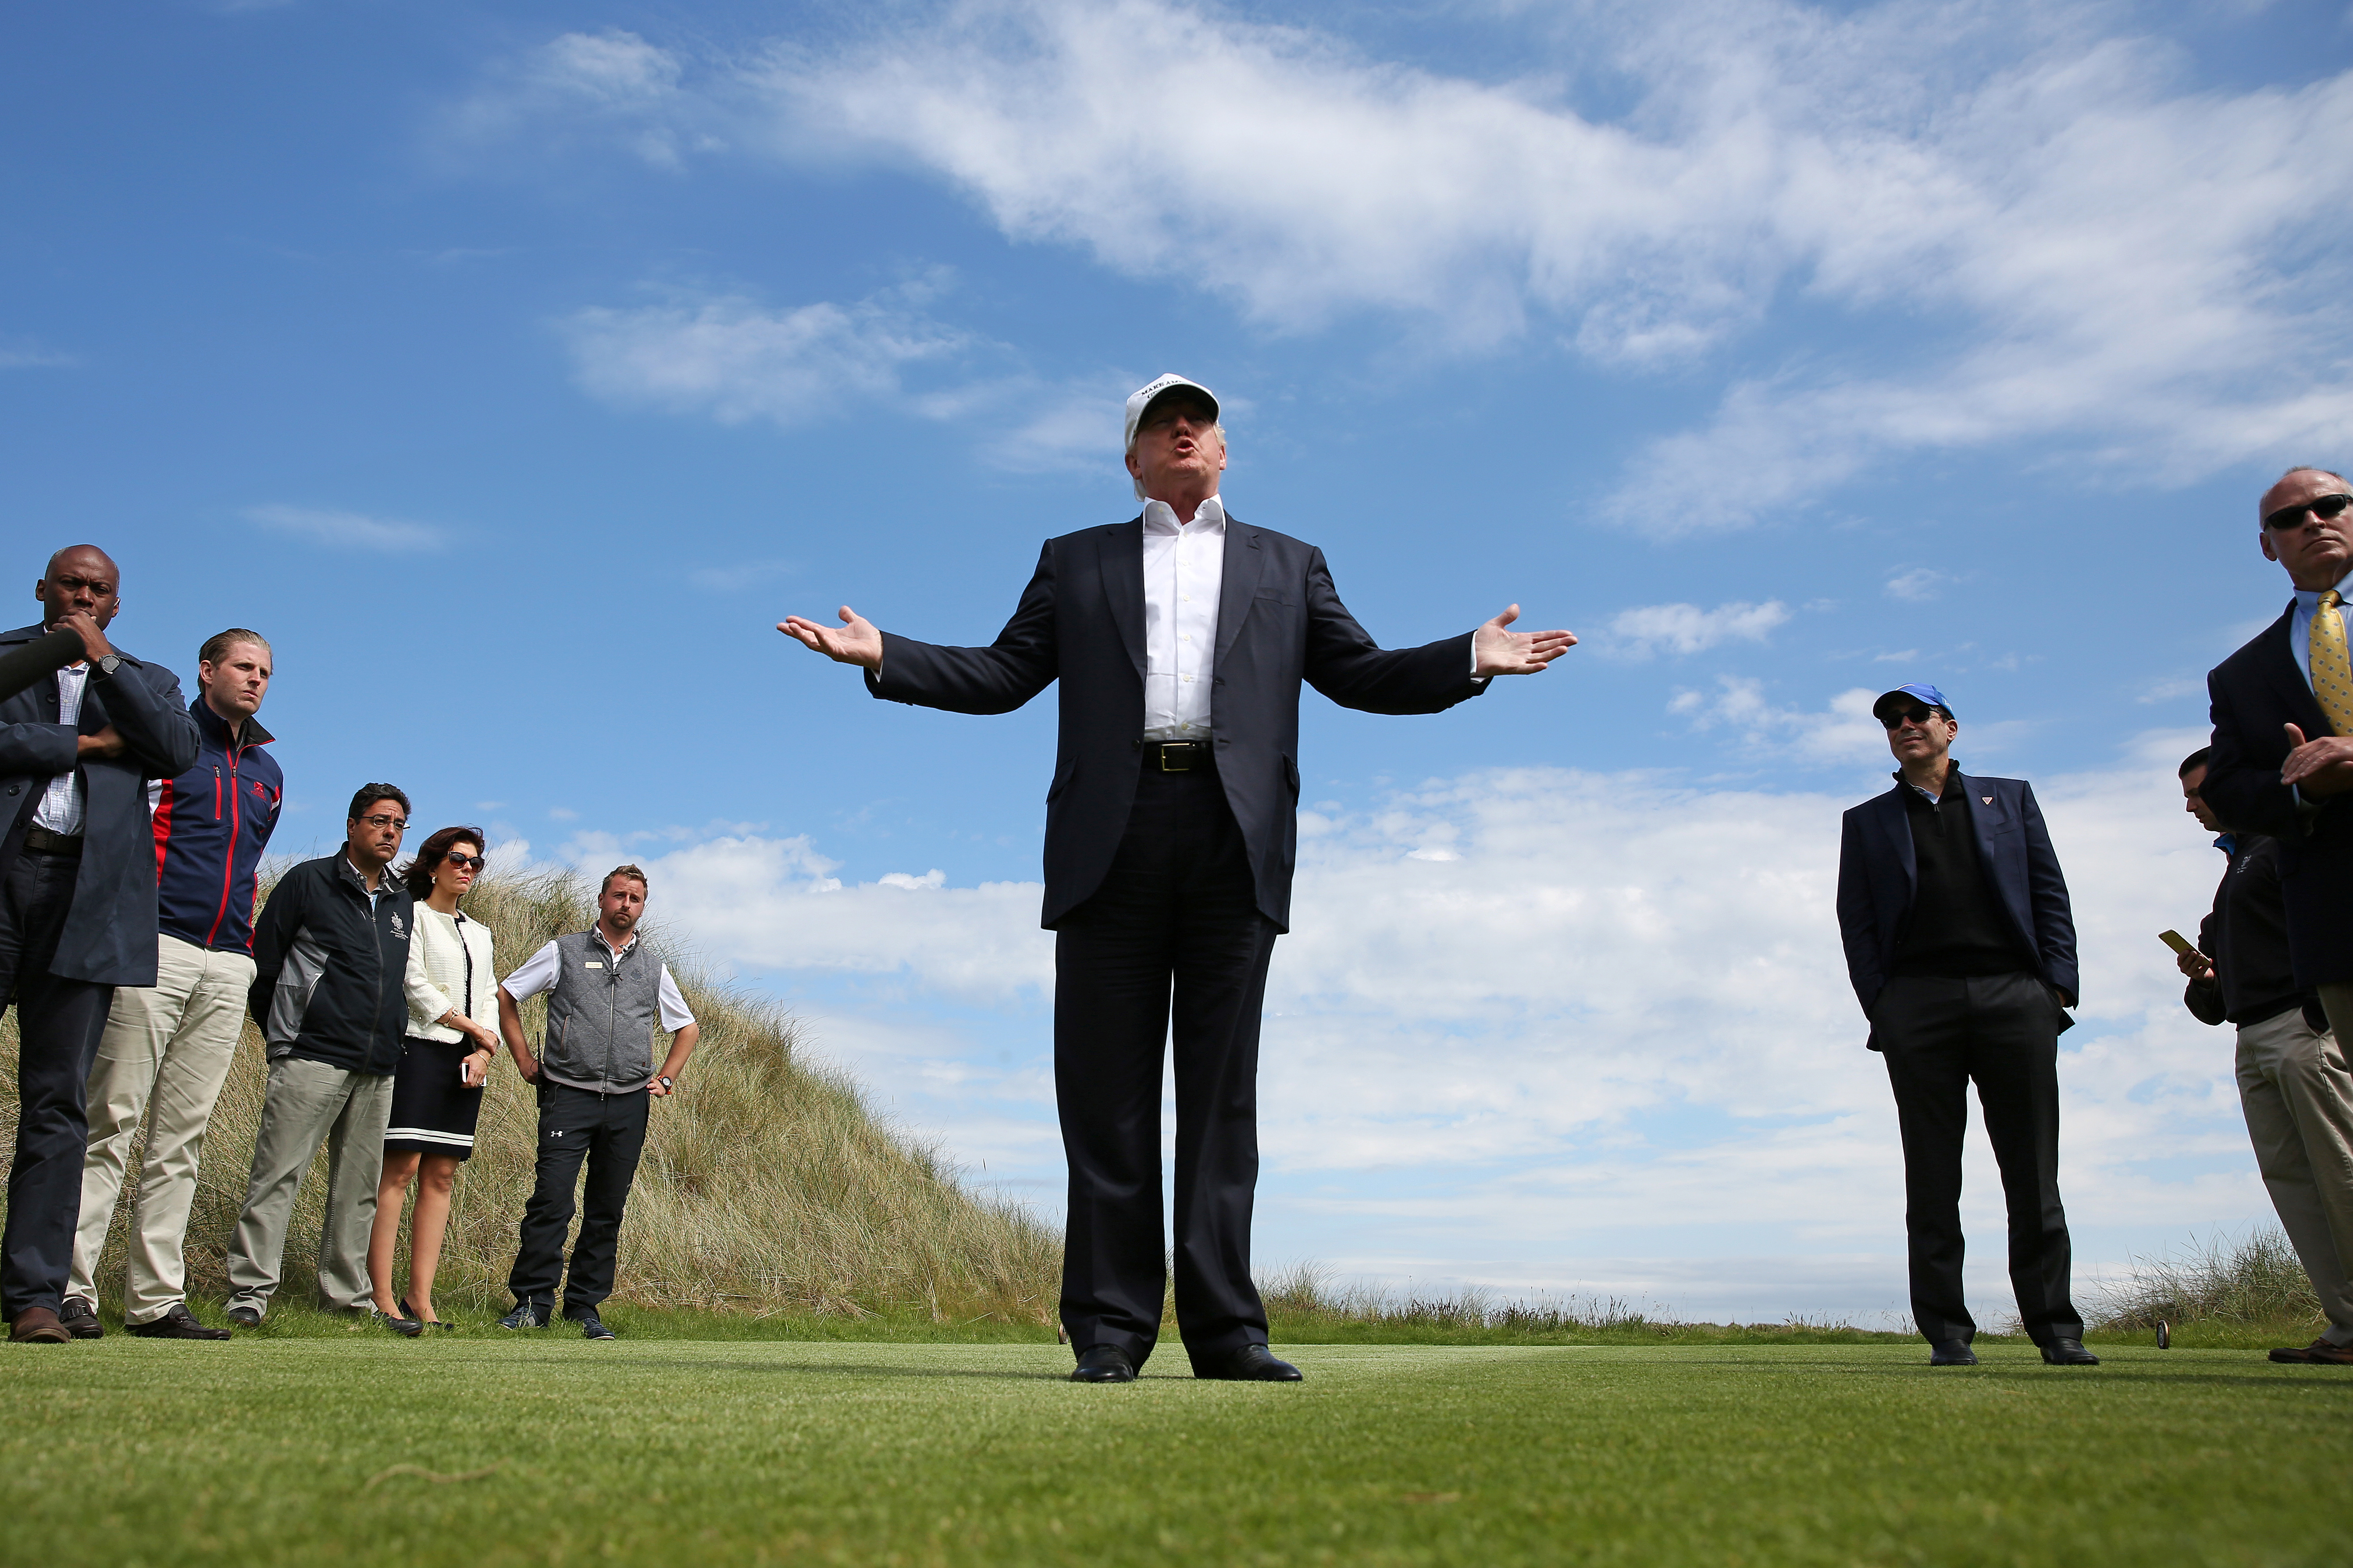 Republican presidential candidate Donald Trump speaks to the media on the golf course at his Trump International Golf Links in Aberdeen, Scotland, June 25, 2016.  REUTERS/Carlo Allegri.     TPX IMAGES OF THE DAY      - RTX2I63W